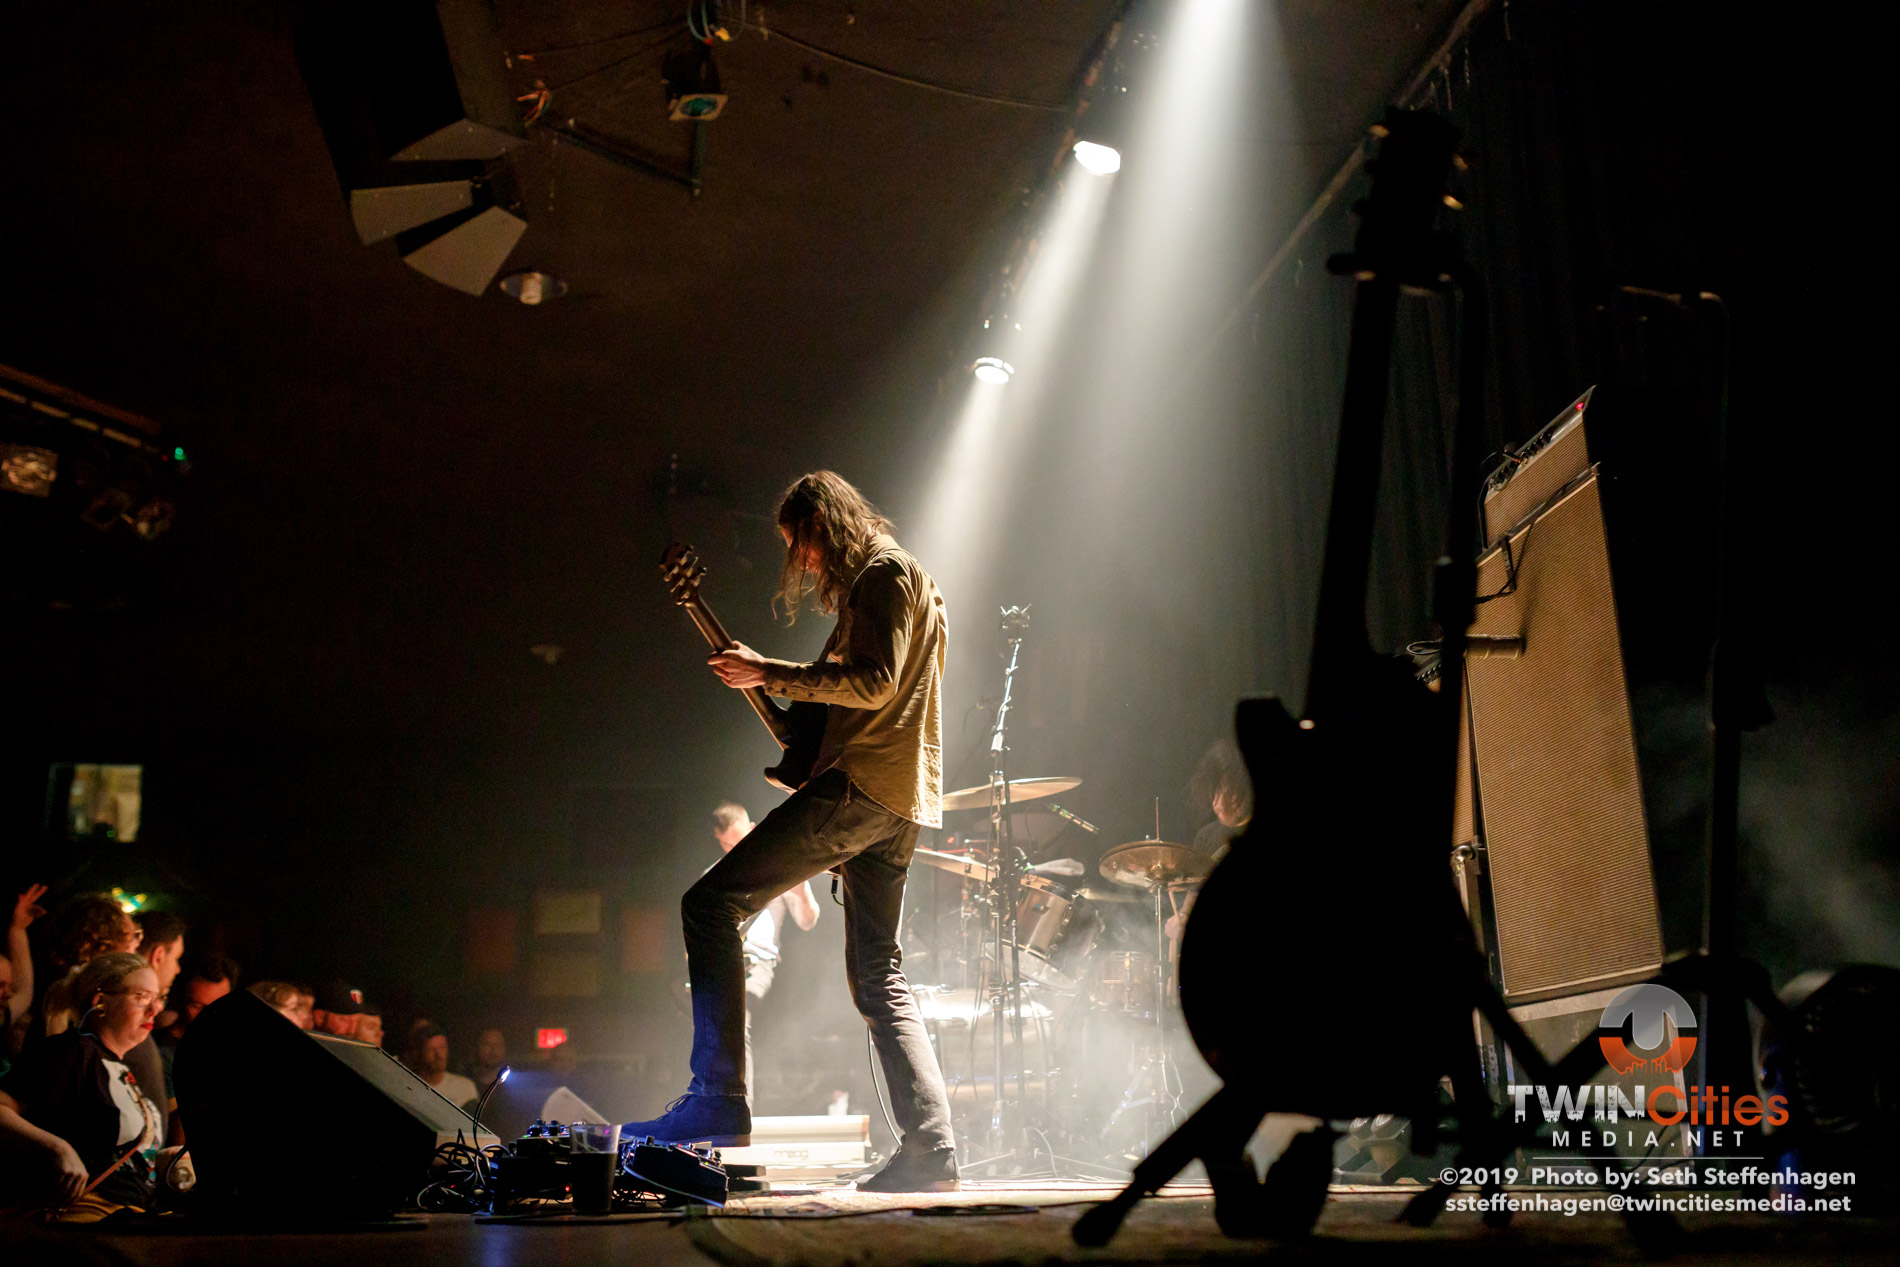 September 12, 2019 - Minneapolis, Minnesota, United States - Russian Circles live in concert at The Cedar Cultural Center along with FACS as the openers.  (Photo by Seth Steffenhagen/Steffenhagen Photography)